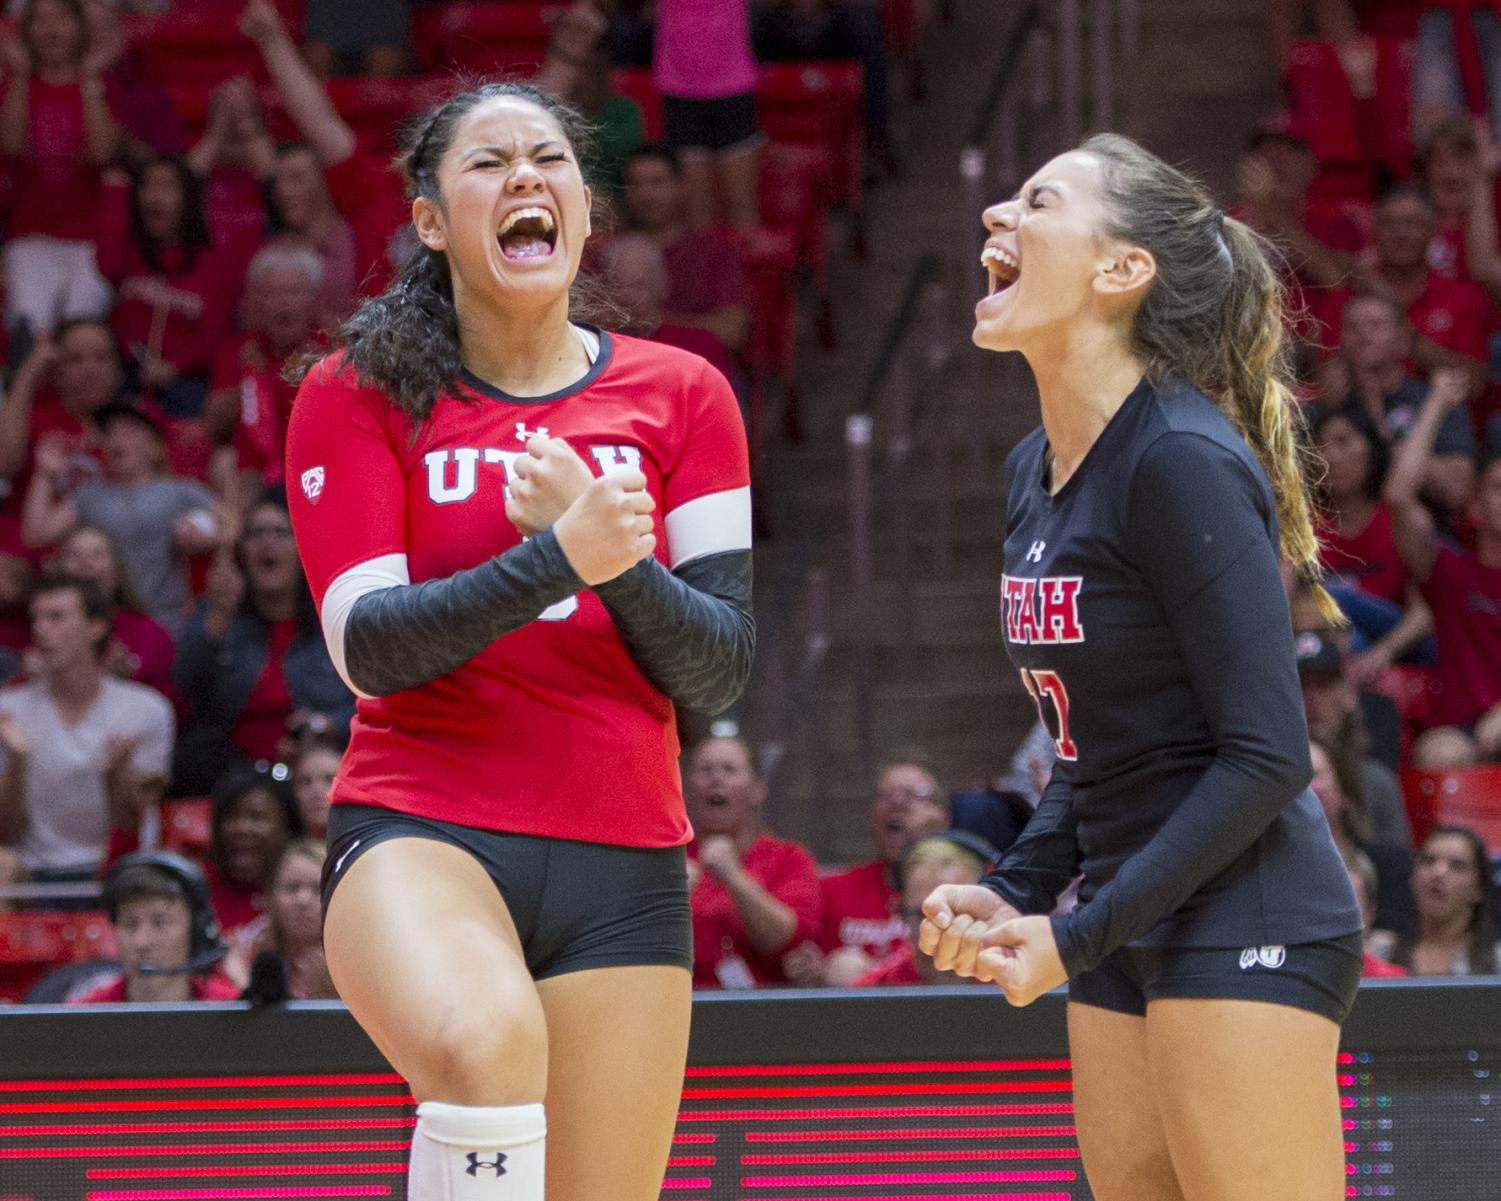 University of Utah freshman setter Saige Ka'aha'aina-Torres (9) and junior libero/defensive specialist Brianna Doehrmann (17) celebrate after a point in an NCAA Volleyball match vs. the UCLA Bruins at the Jon M. Huntsman Center in Salt Lake City, Utah on Friday, Sept. 21, 2018. (Photo by Kiffer Creveling | The Daily Utah Chronicle)